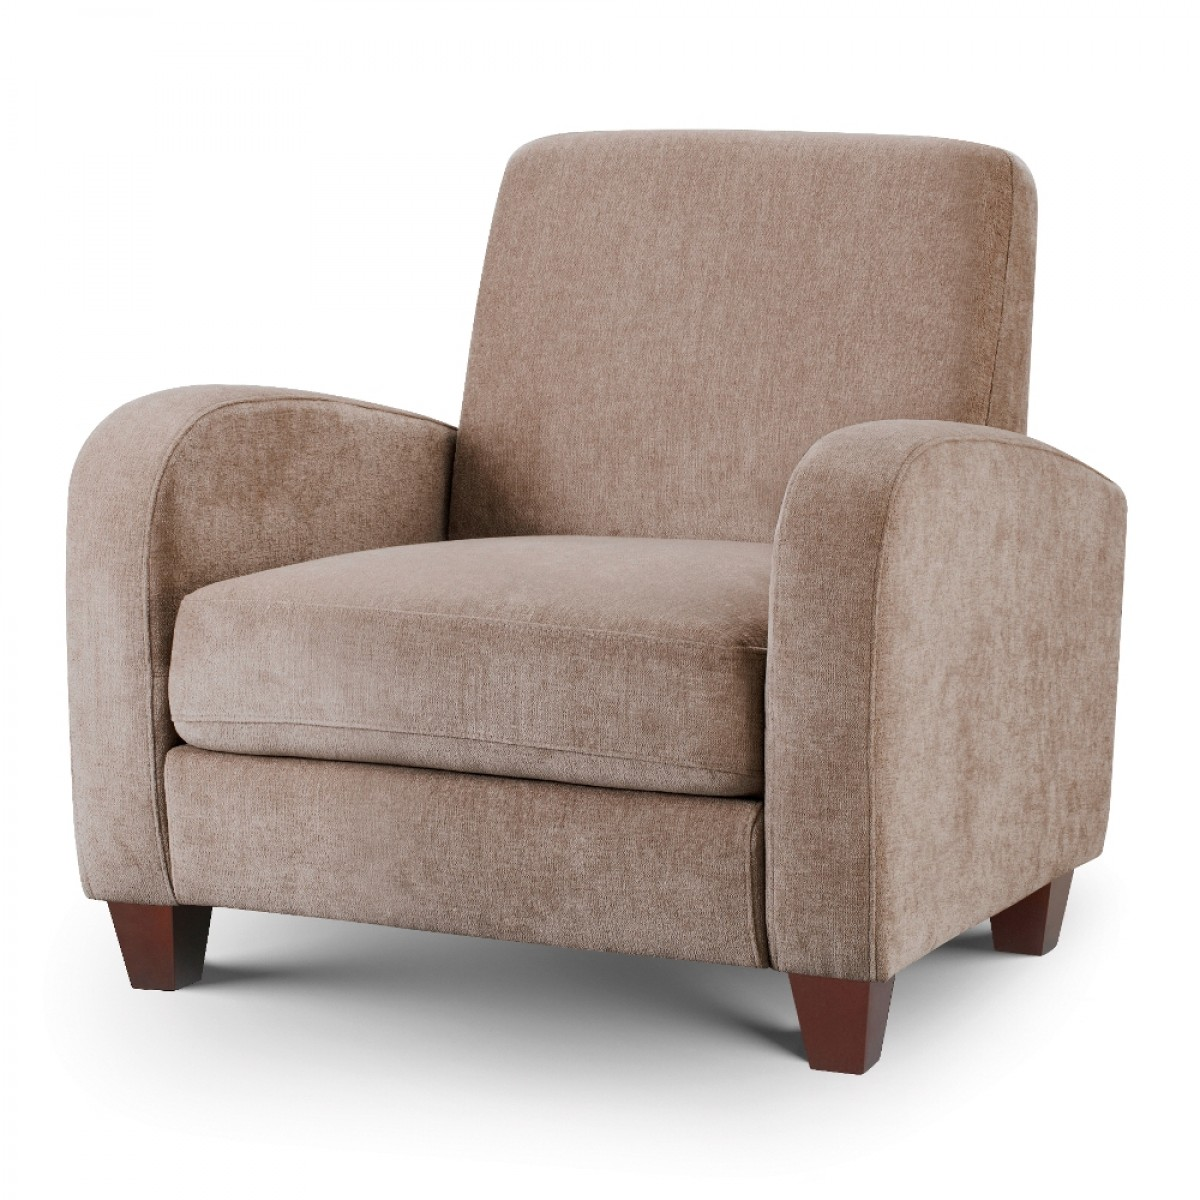 Vivo Mink Fabric Chair